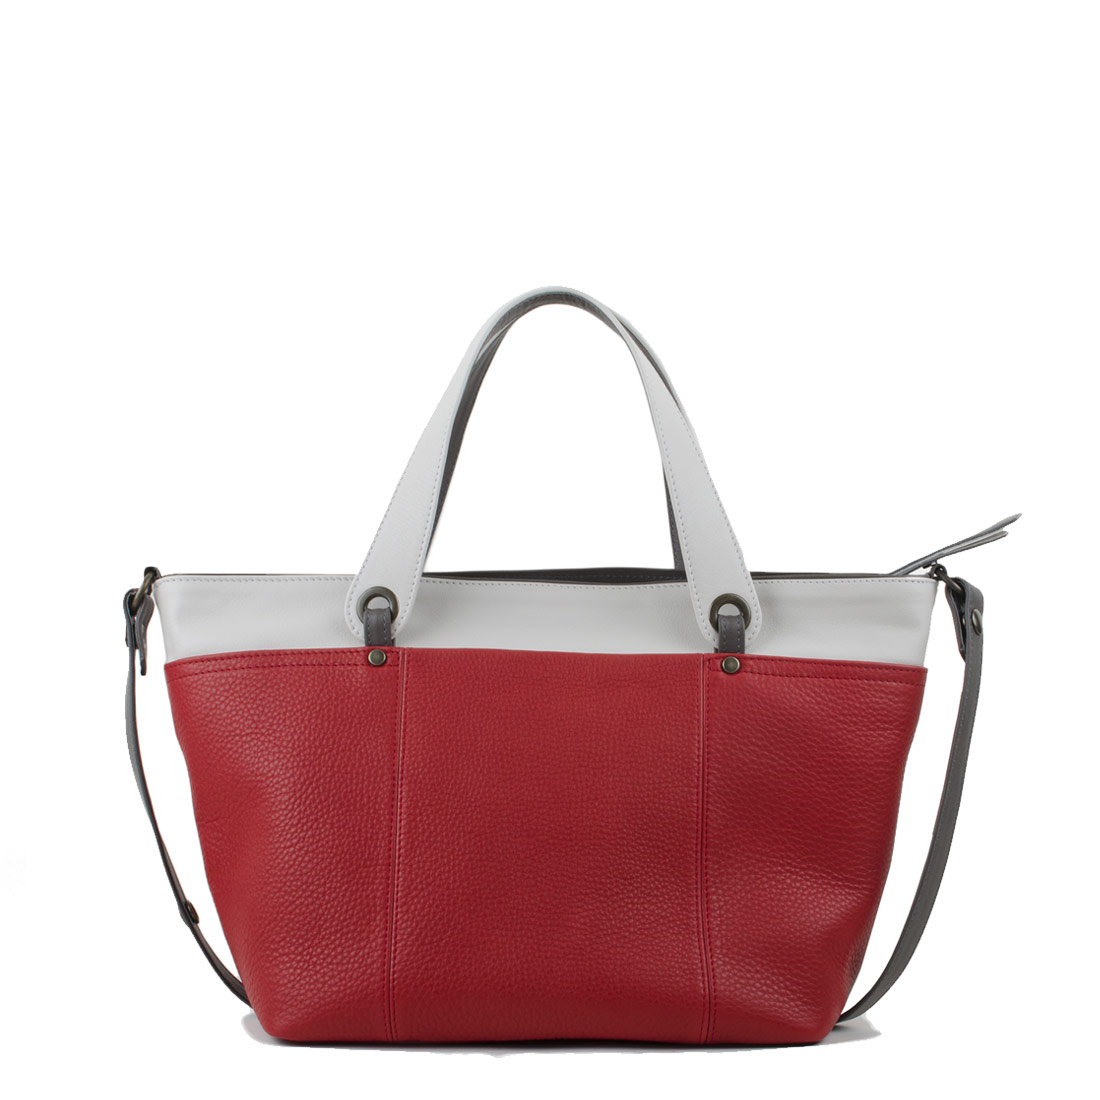 Lucy Coral Red Polvere Leather Tote Bag